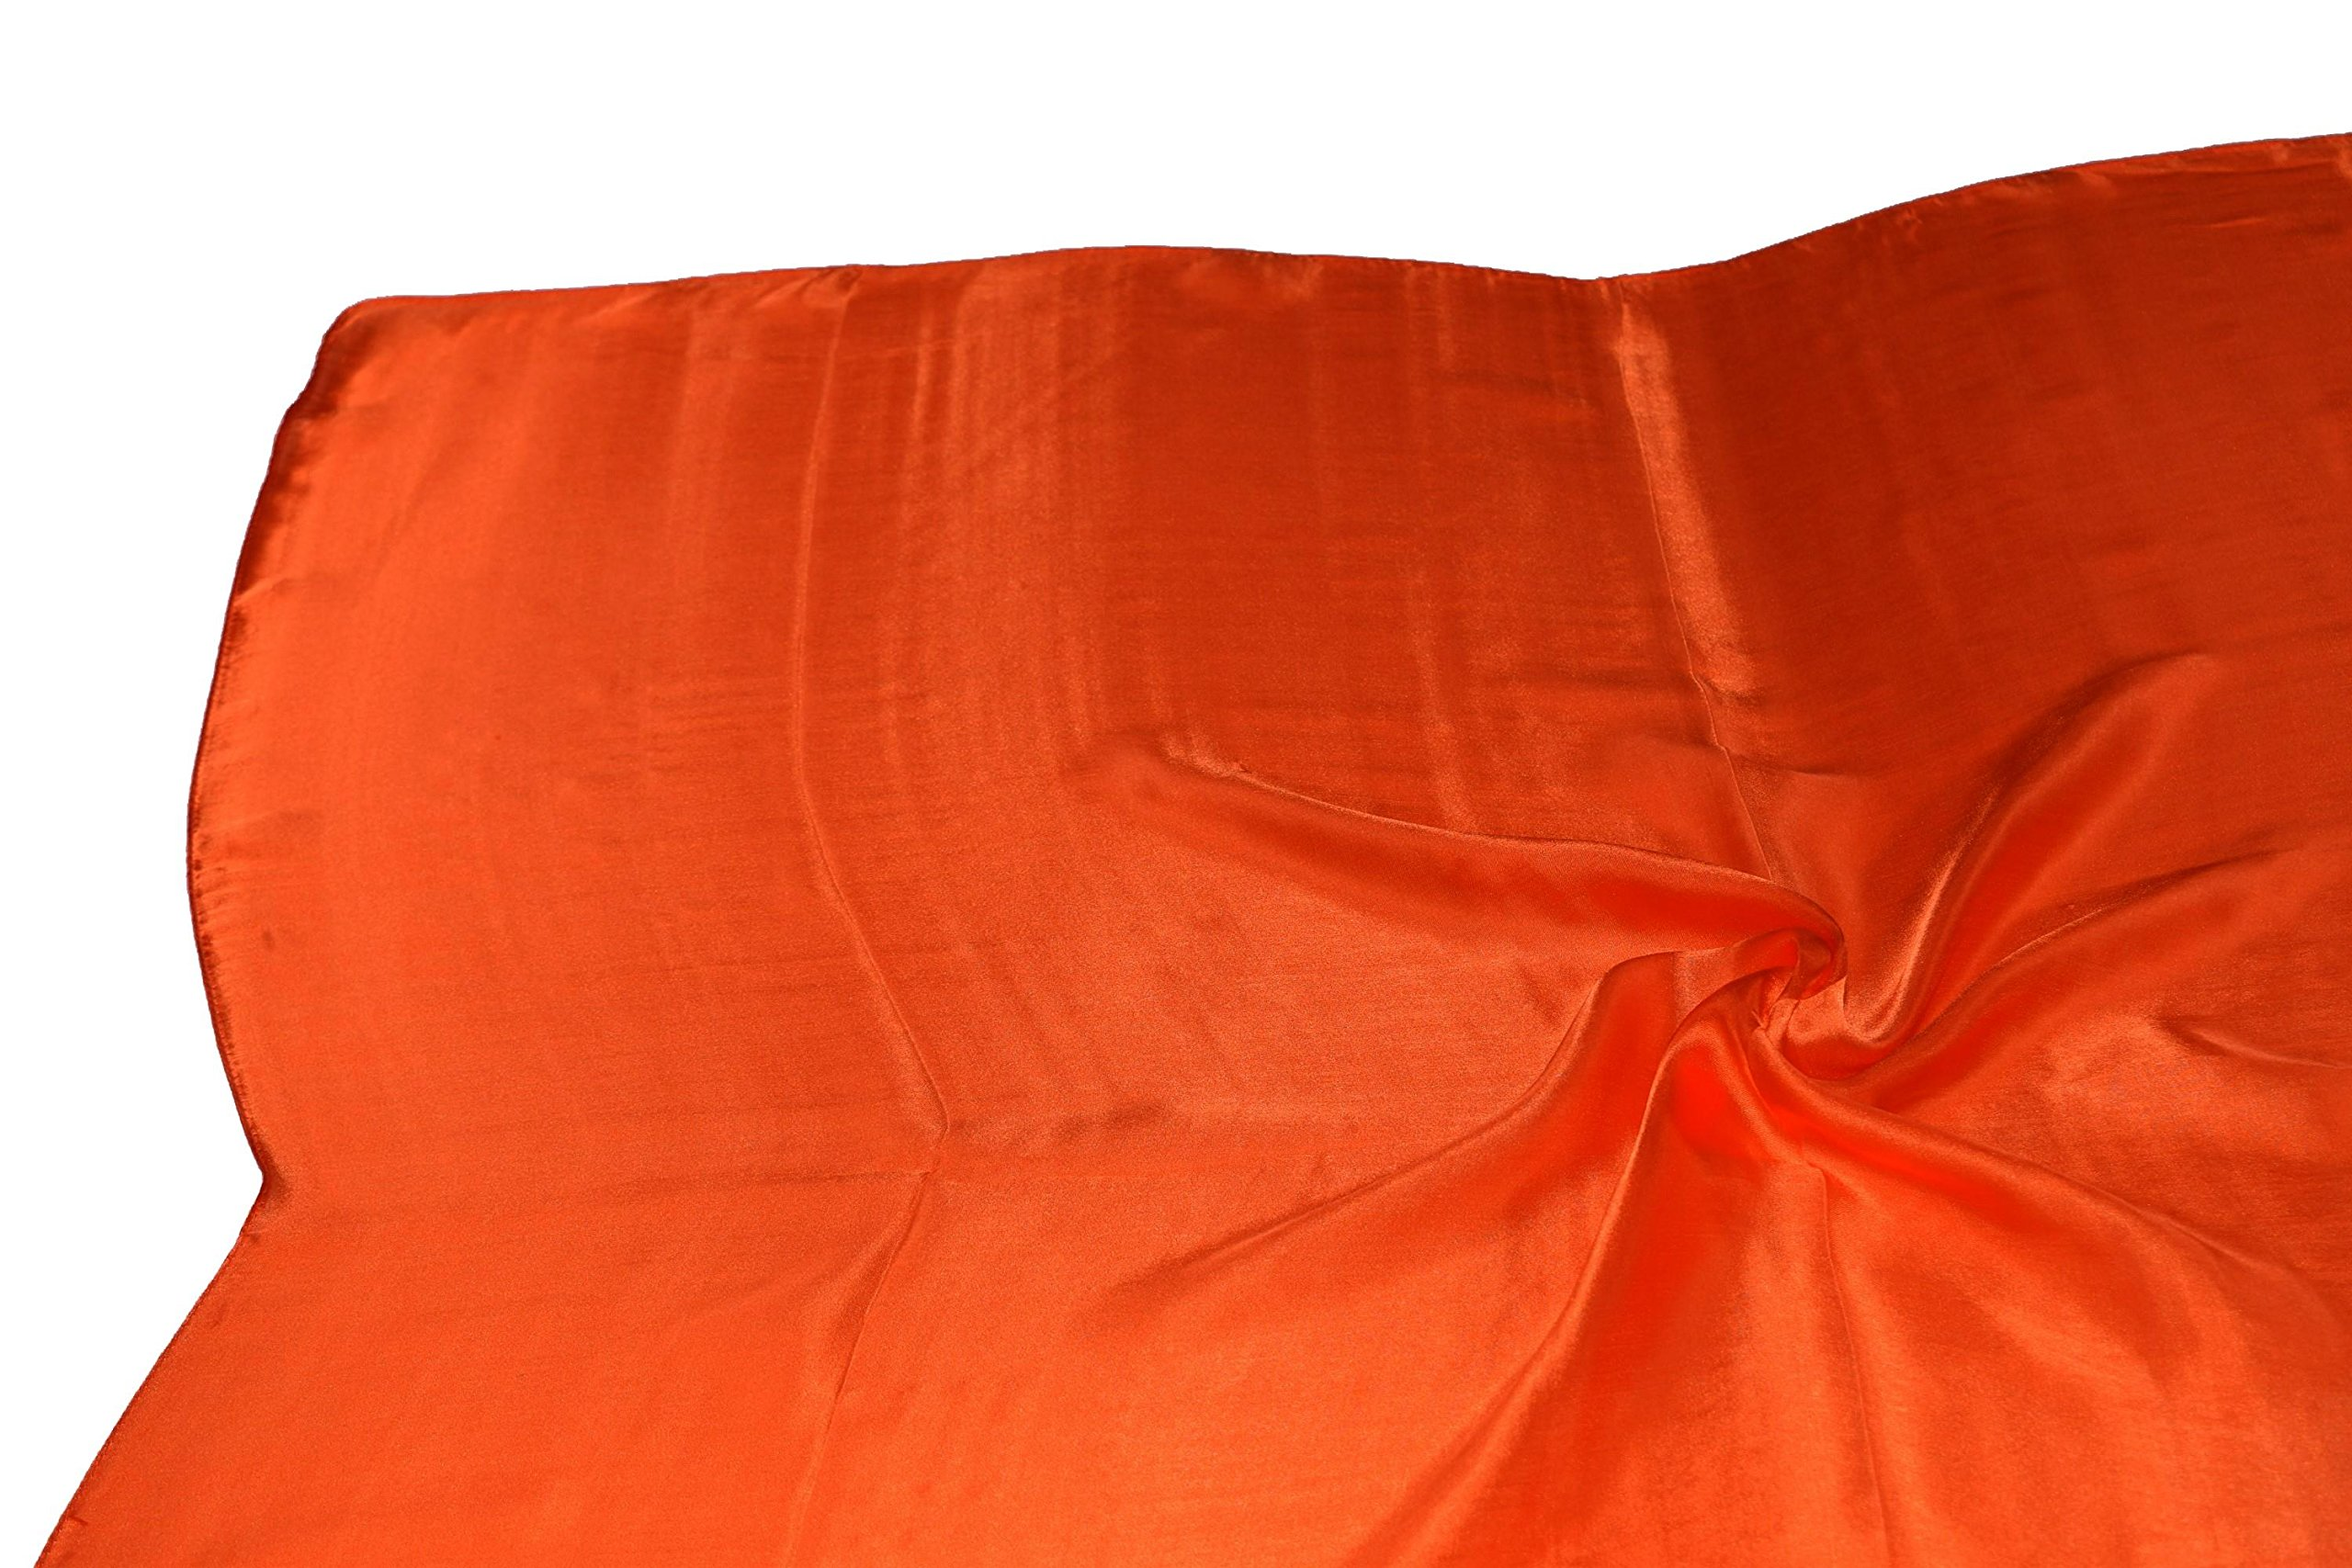 Orange Fine Silk Square Scarf by Bees Knees Fashion (Image #6)